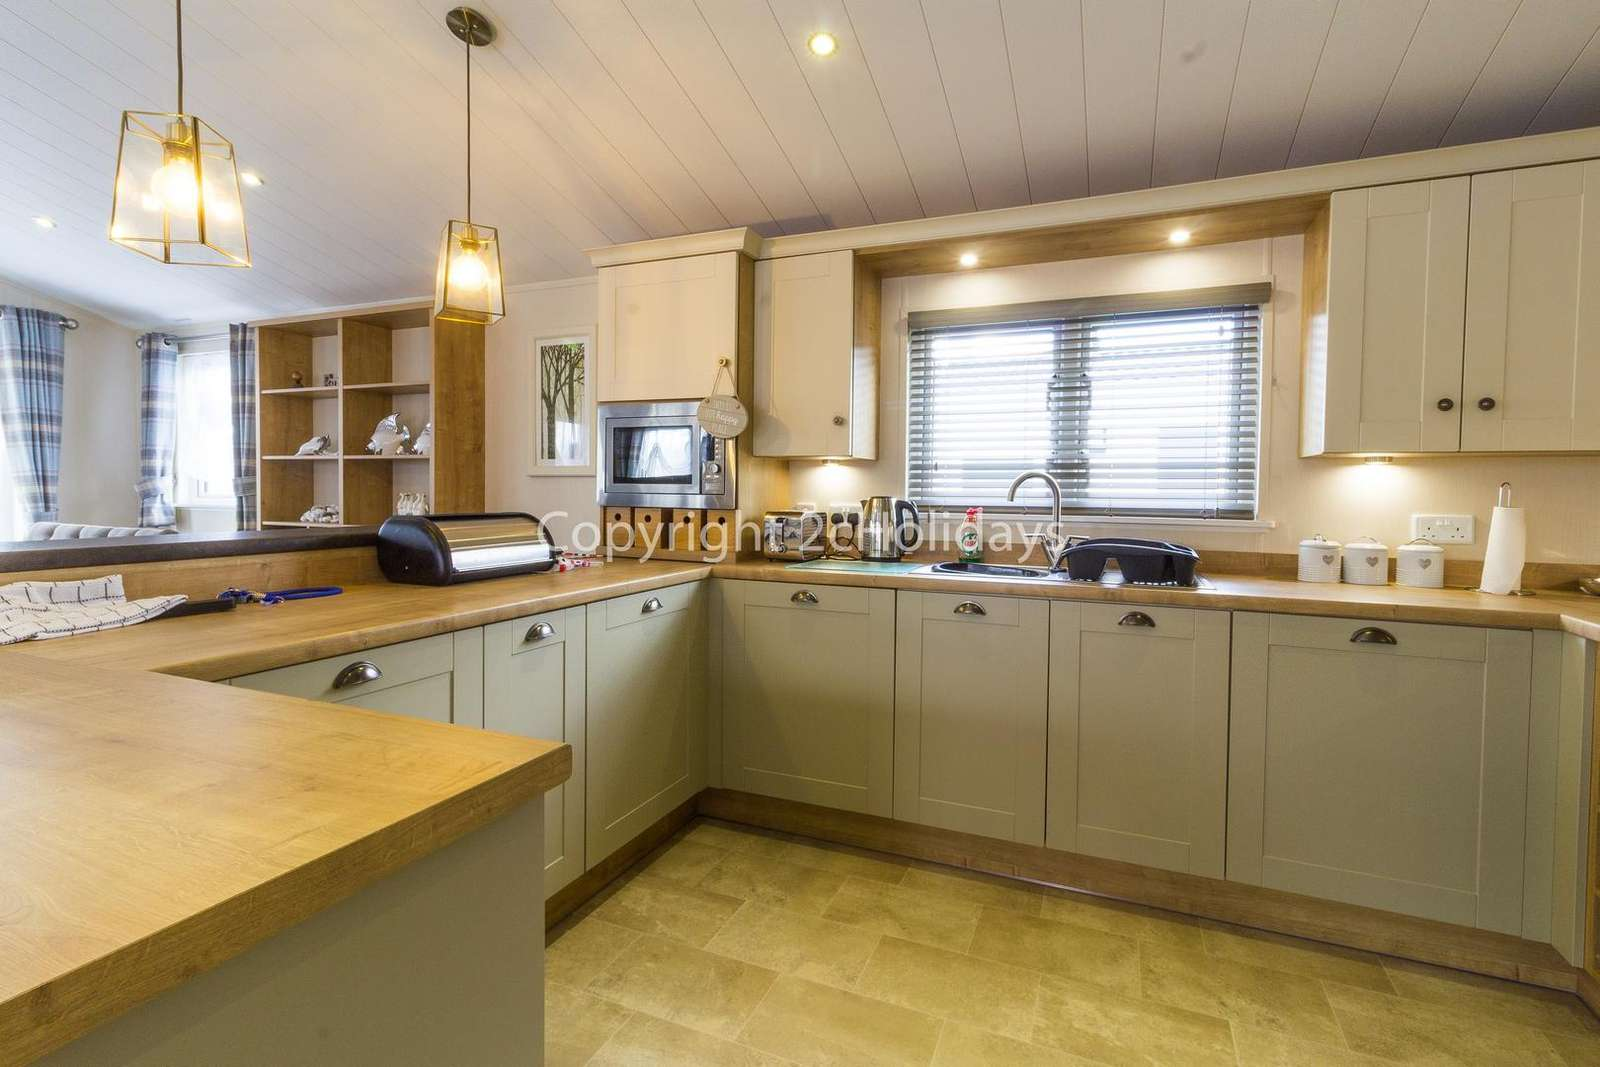 Deluxe kitchen with a dishwasher!